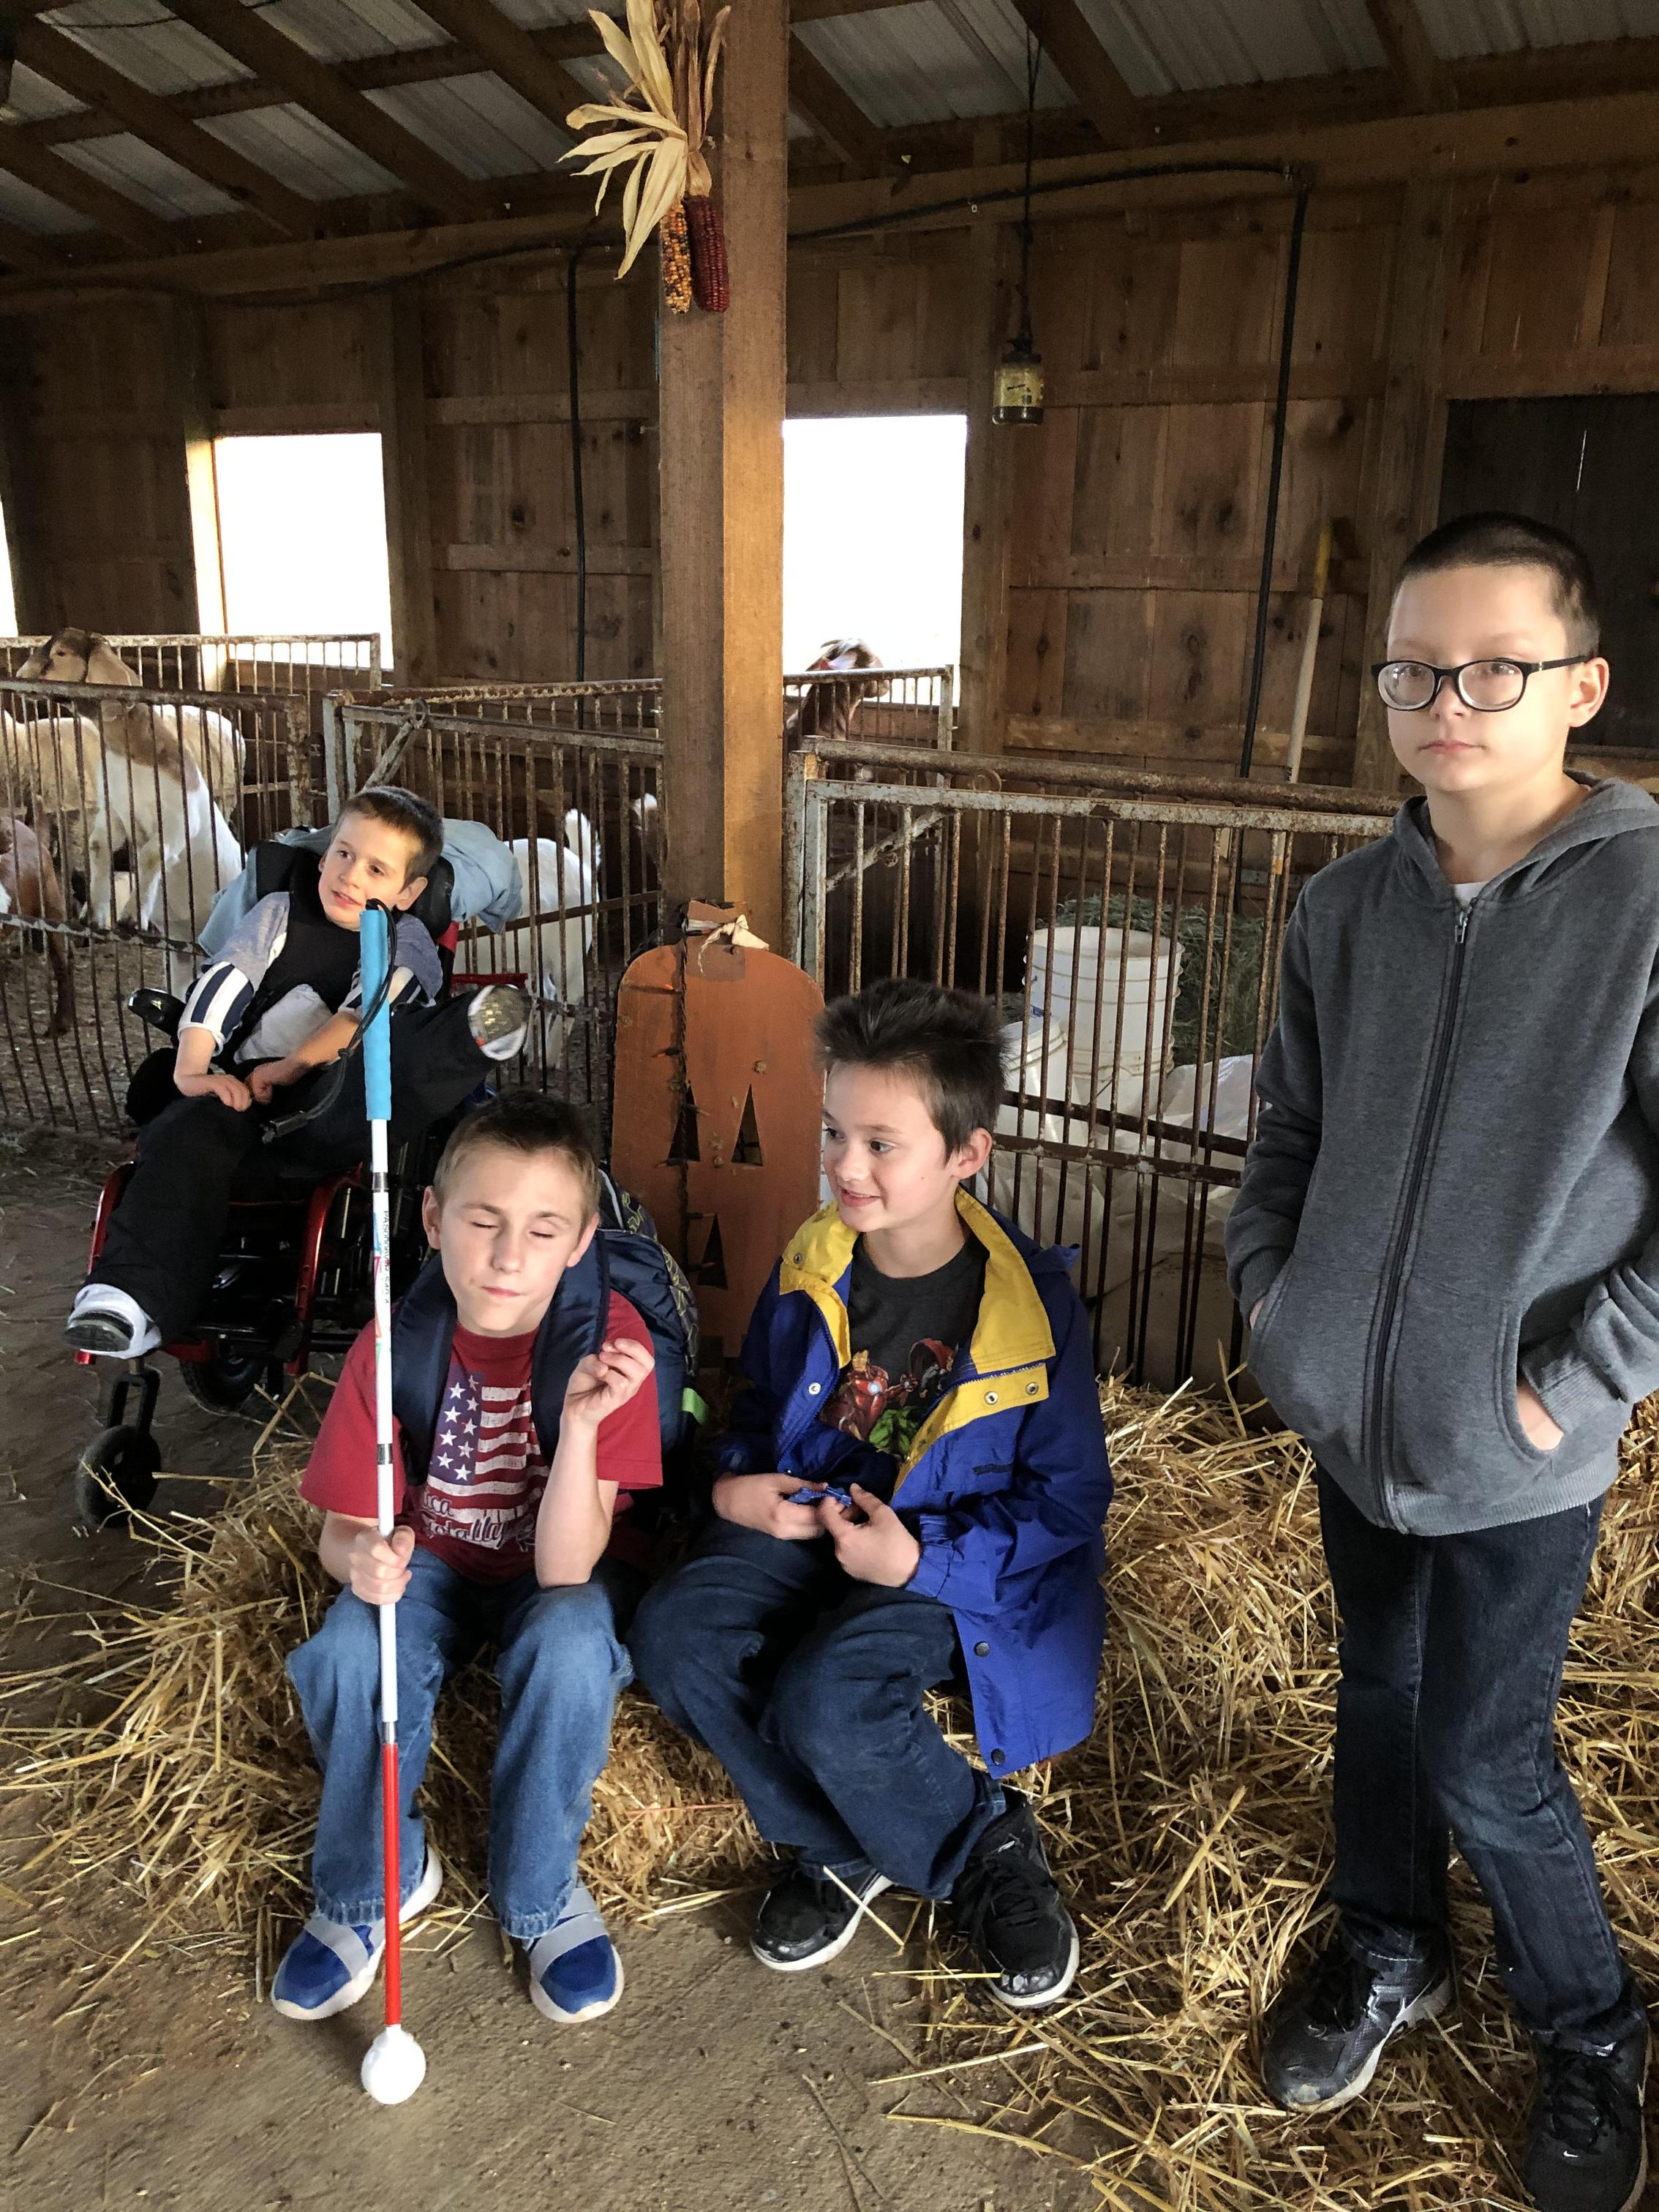 4 male students pose with farm animals in the background